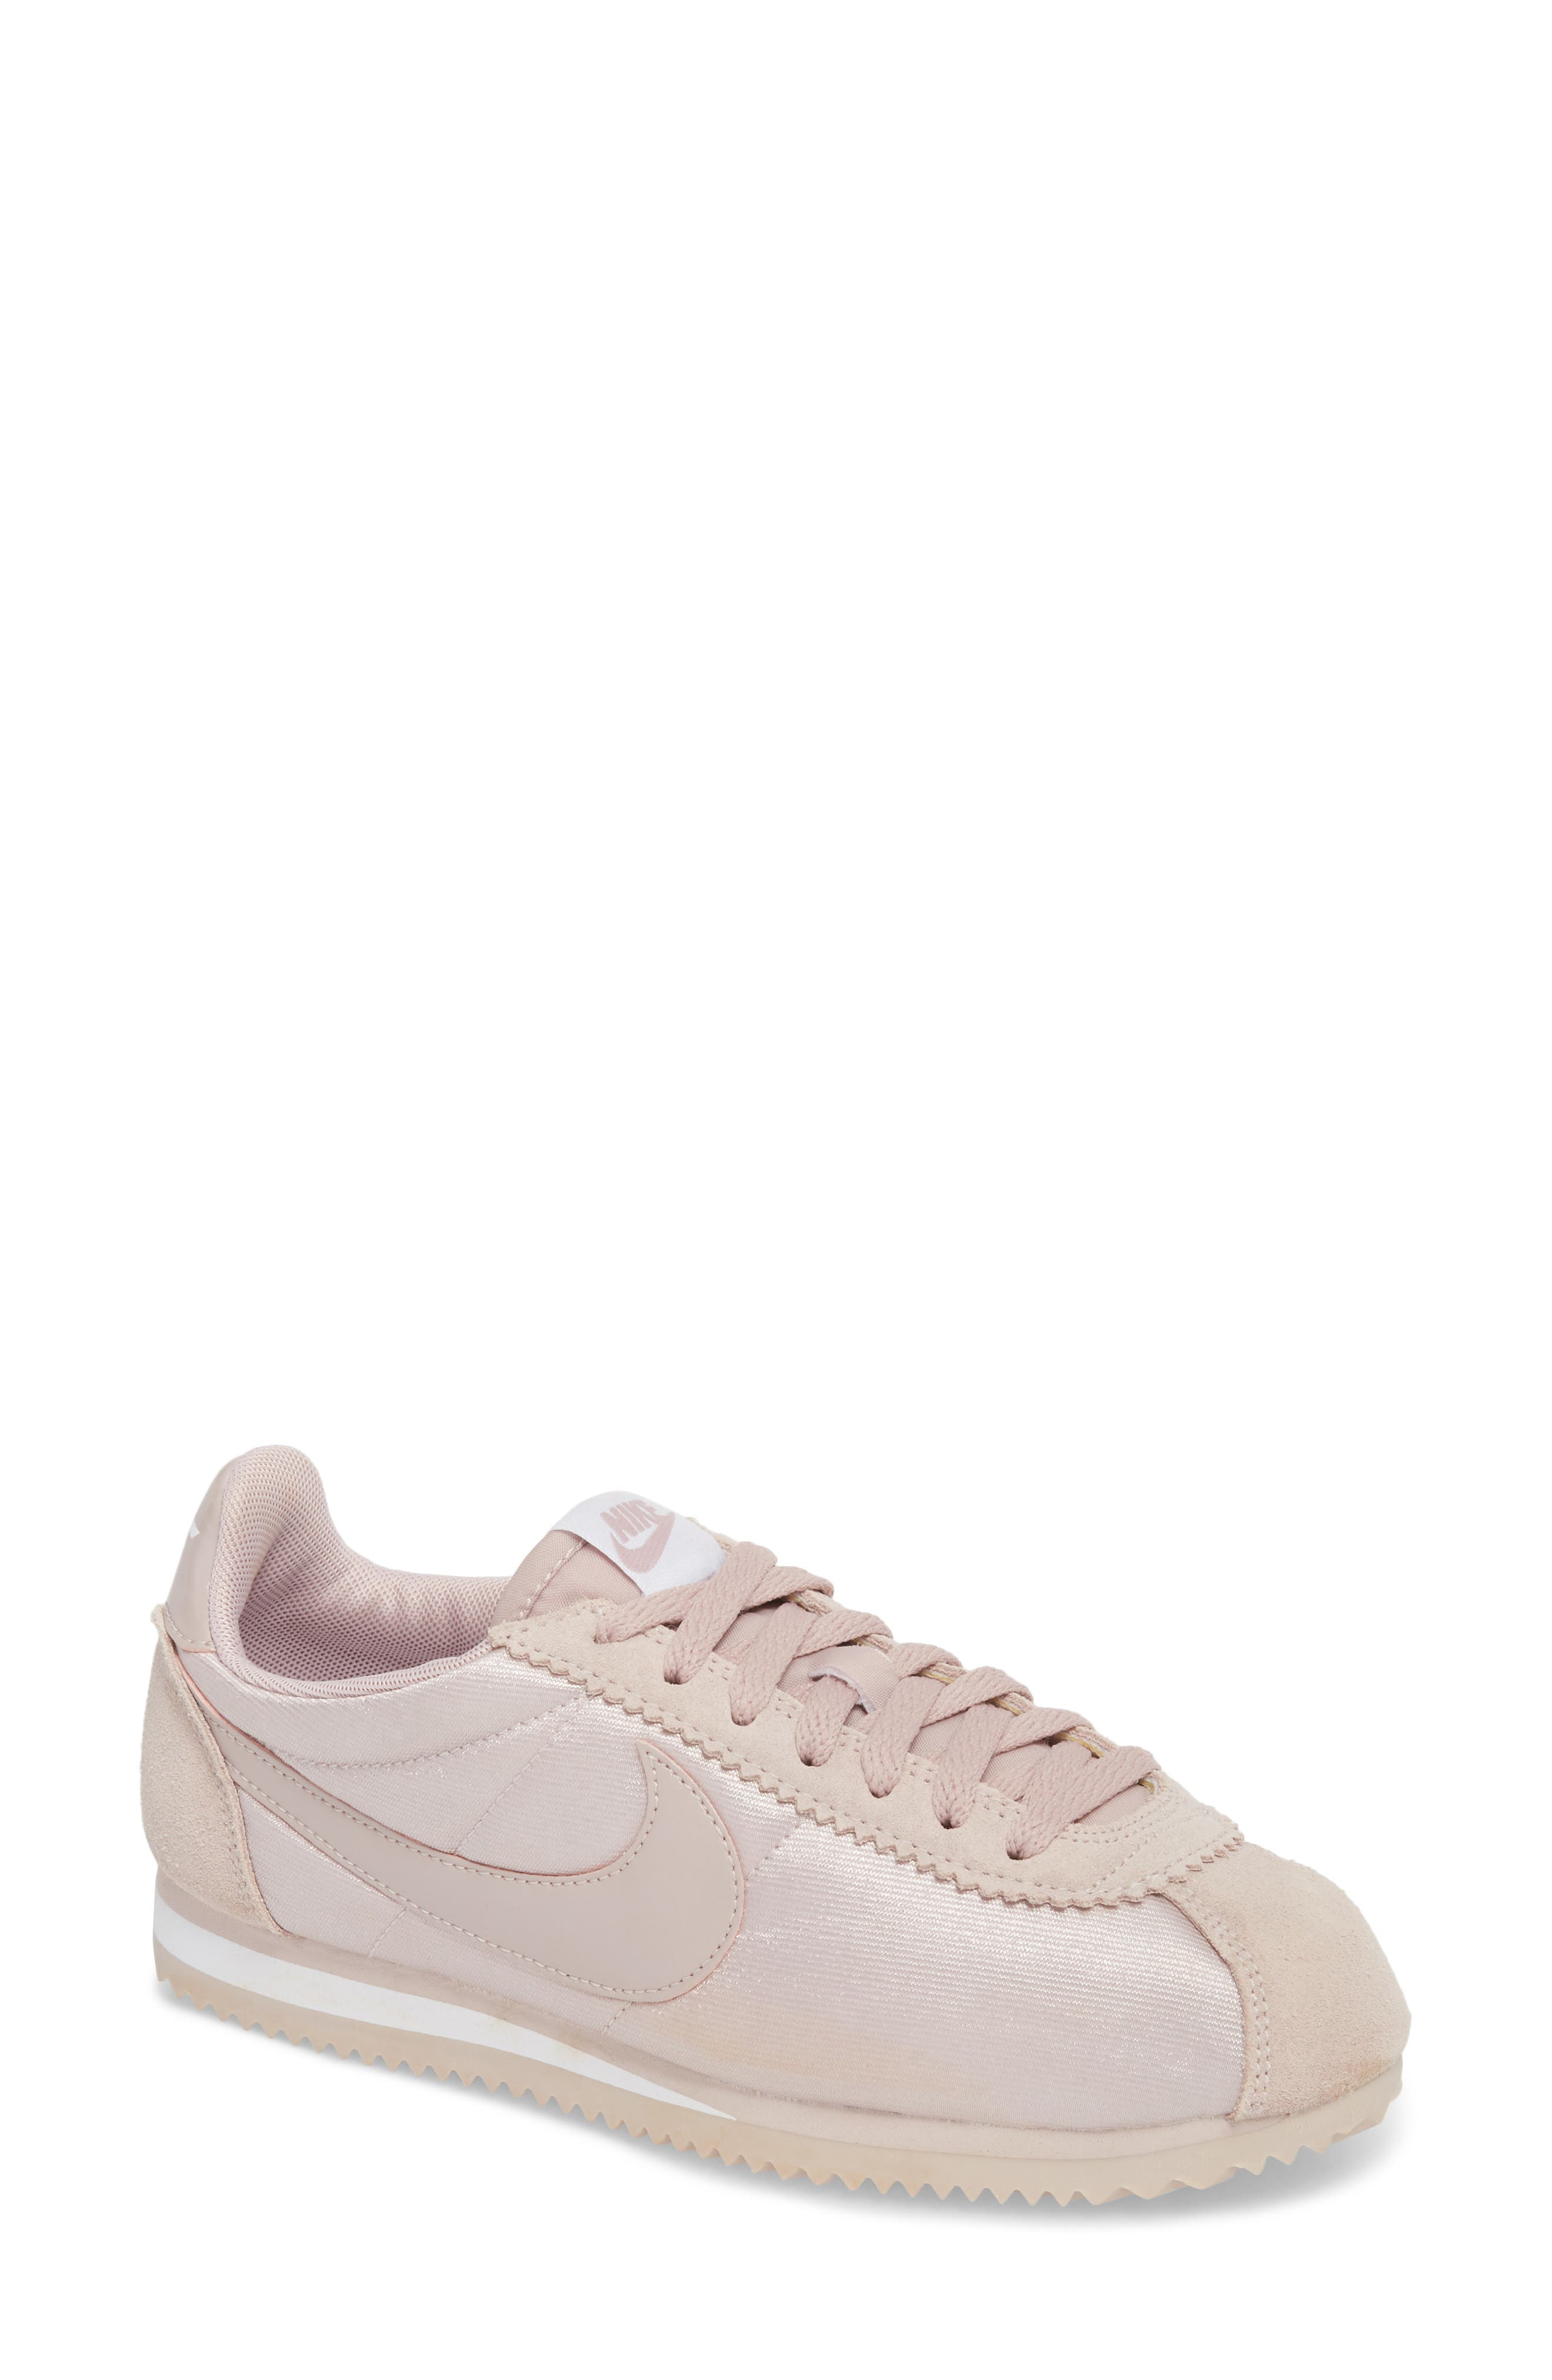 Nike   Nordstrom 70c84a9aed78